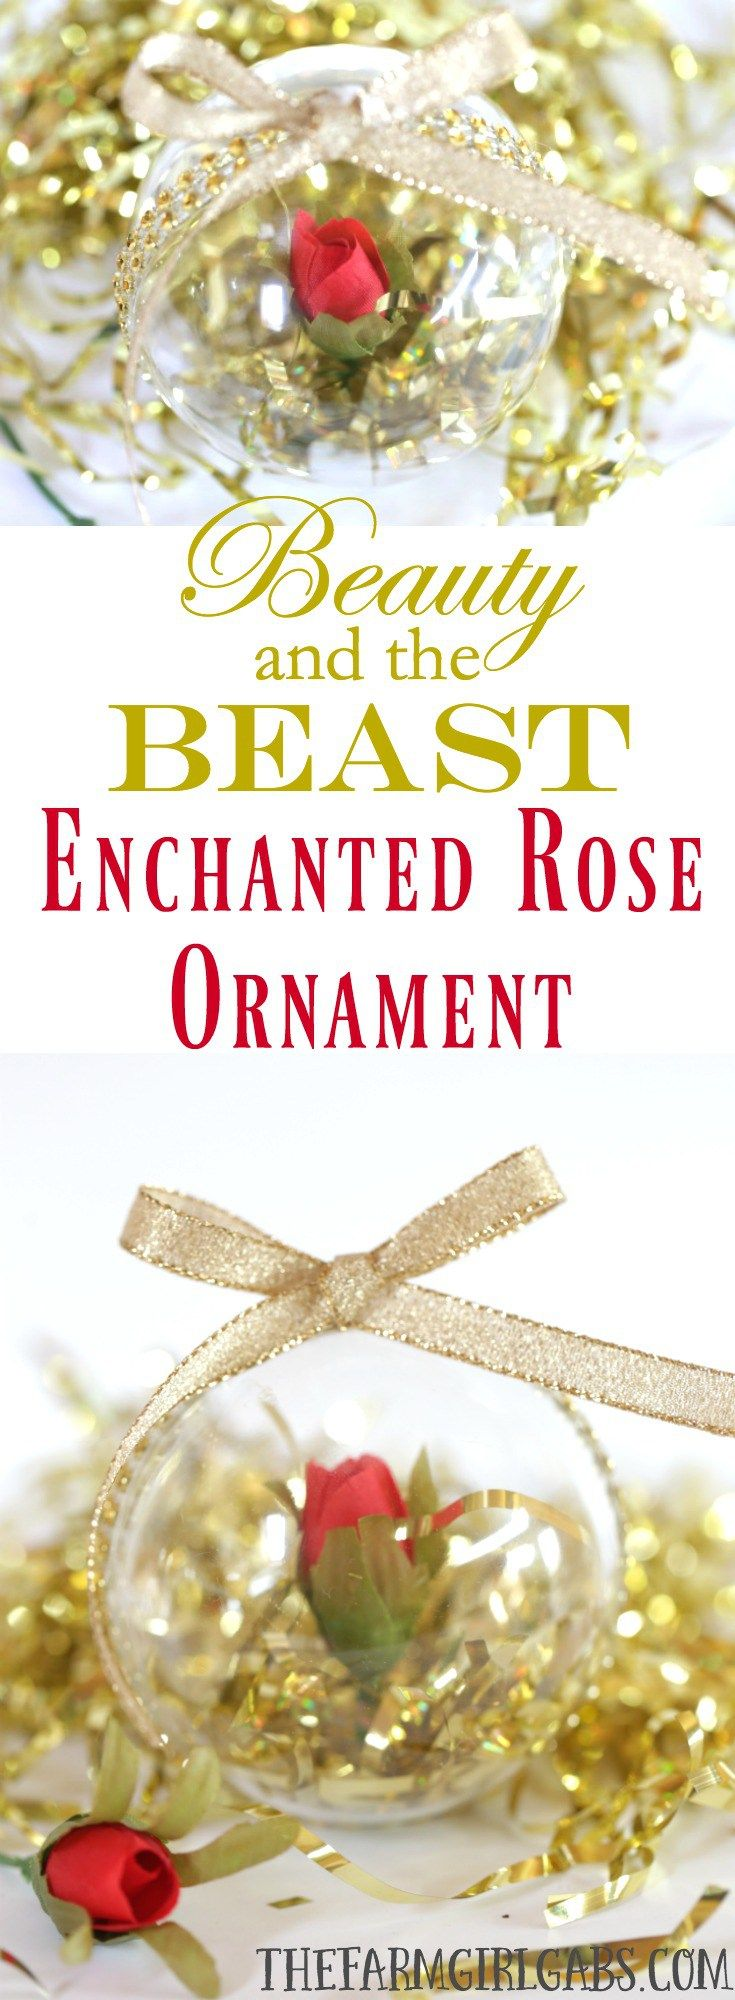 This Simple Diy Beauty And The Beast Enchanted Rose Ornament Is Inspired By  The Upcoming Live Disney Christmas